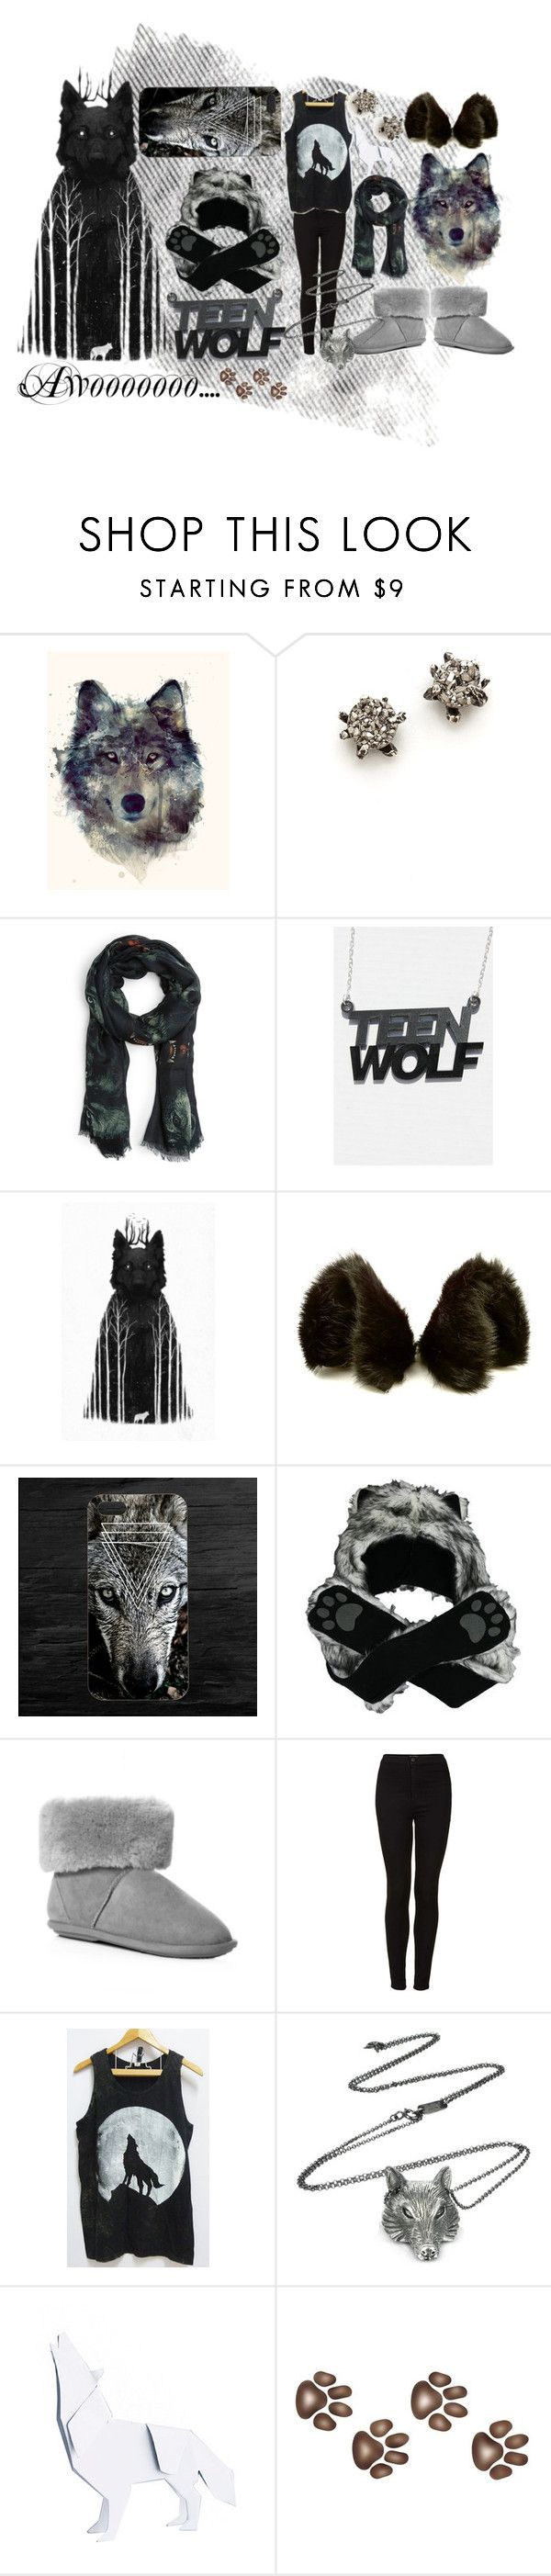 """""""Teen Wolf"""" by jungkook ❤ liked on Polyvore featuring Lauren Wolf, MANGO, Just Sheepskin, Topshop, Ugo Cacciatori and Artful Animal Figurines"""